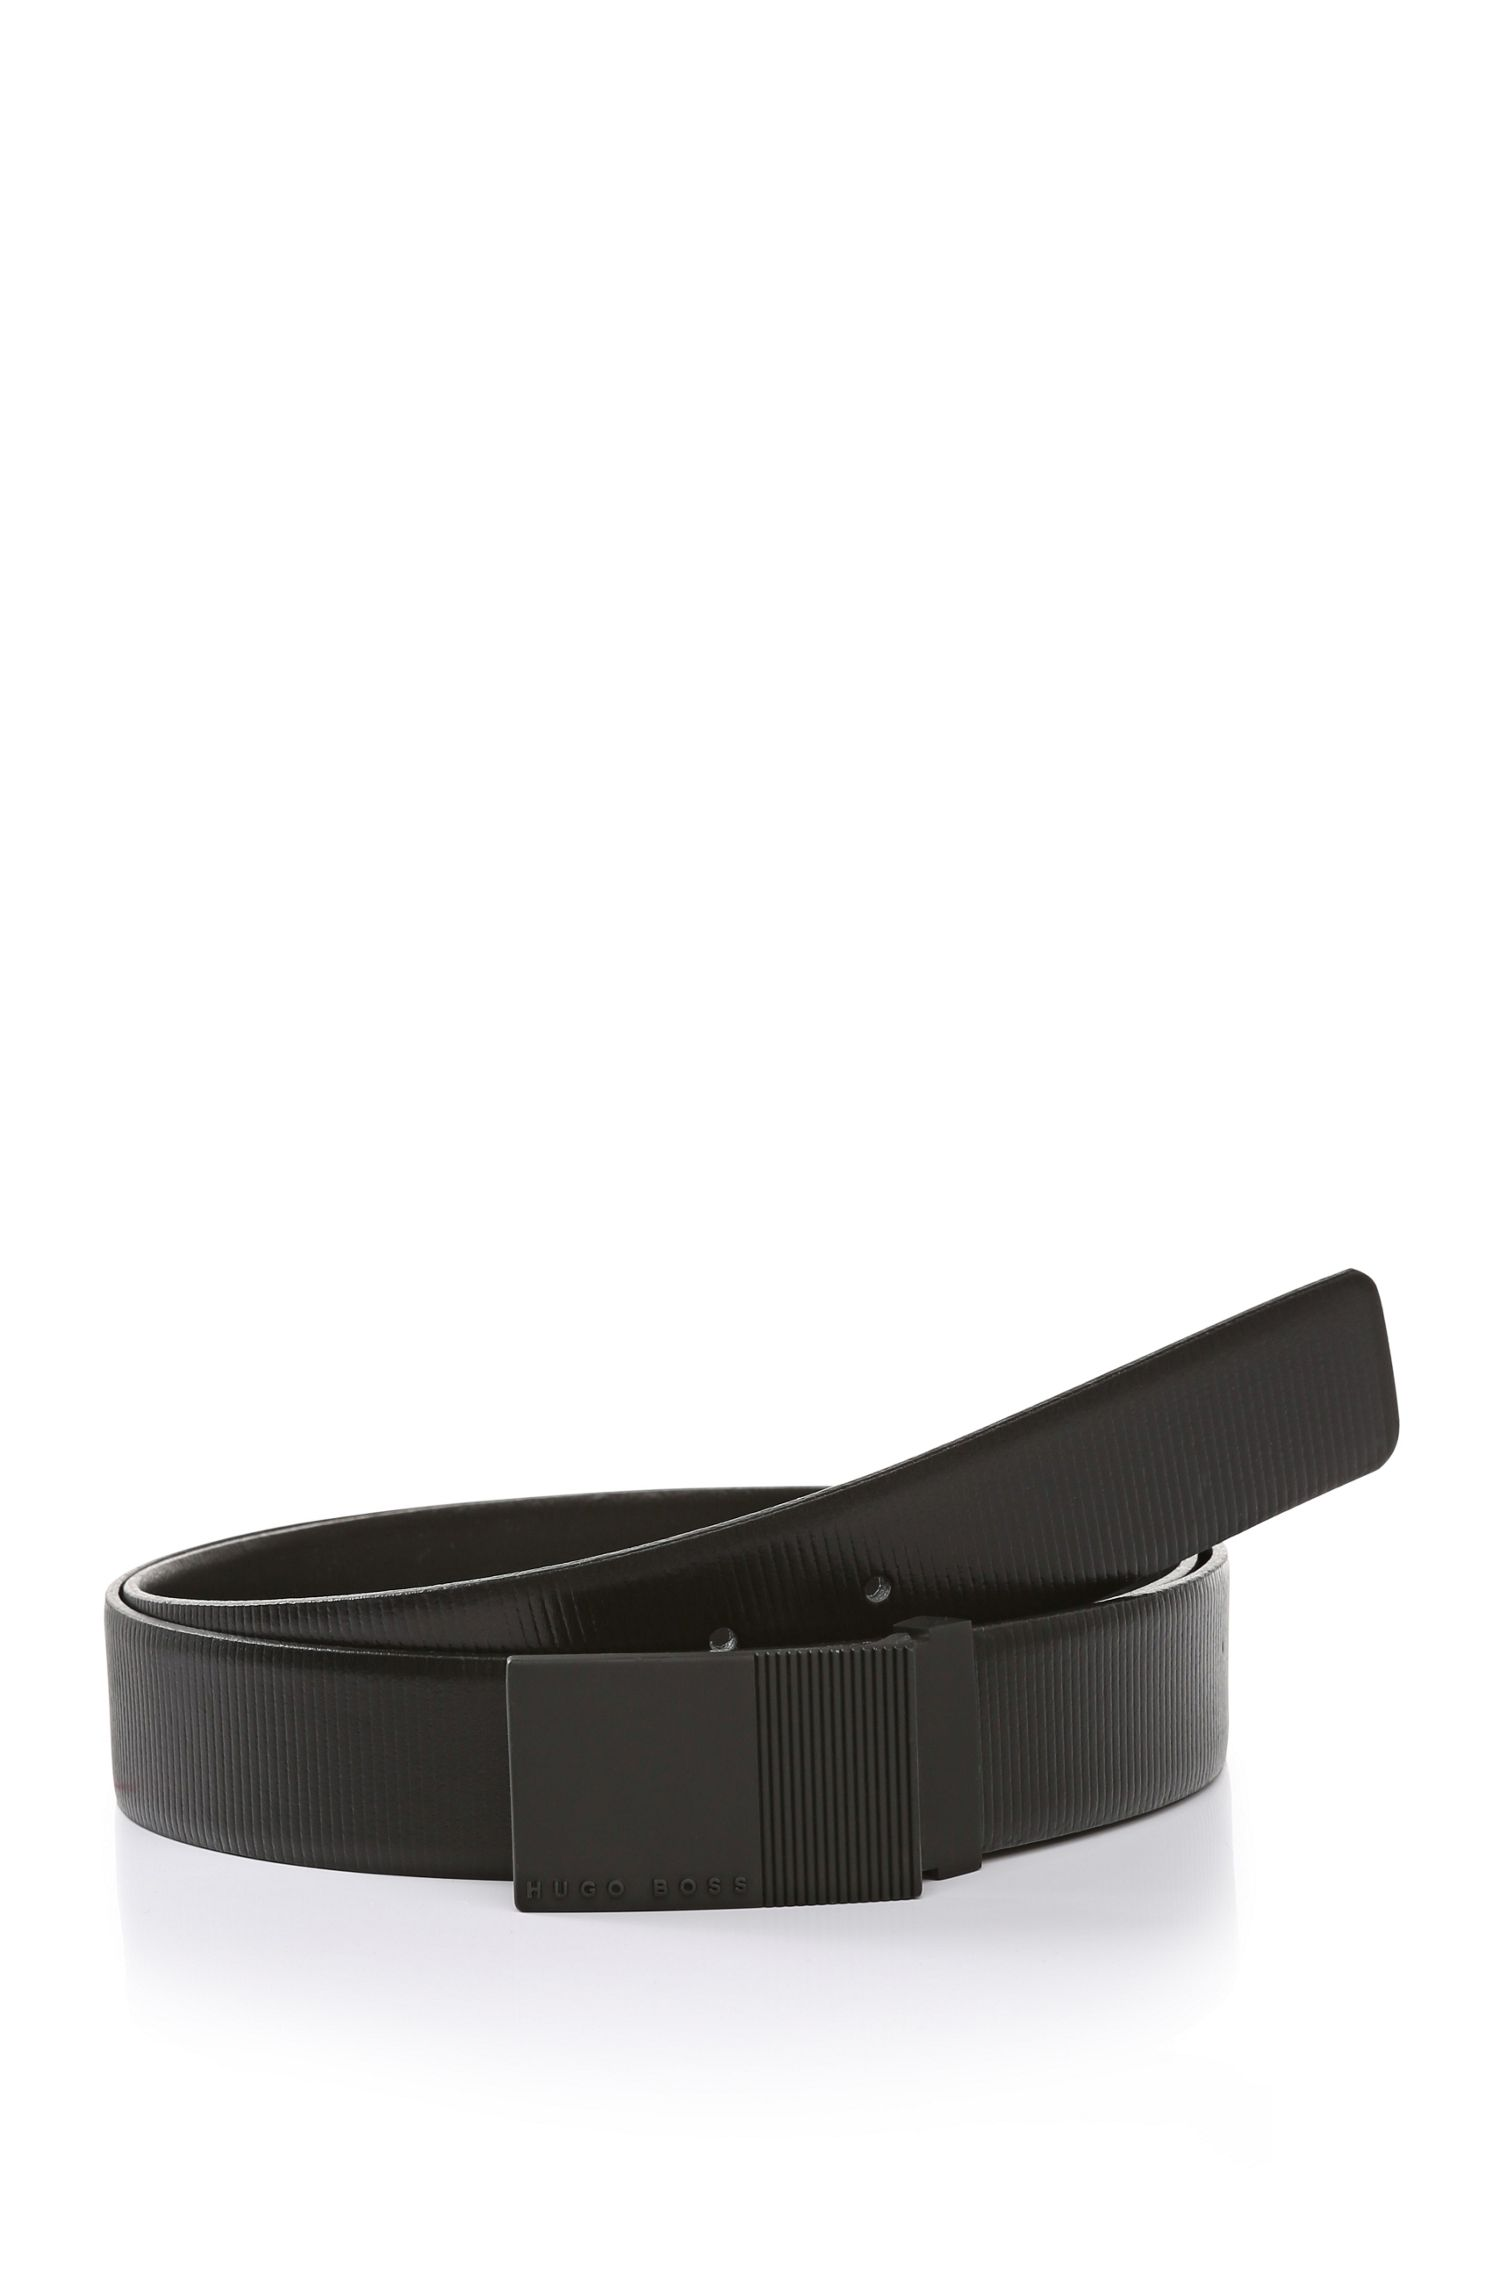 'Torres' | Striated Leather Belt